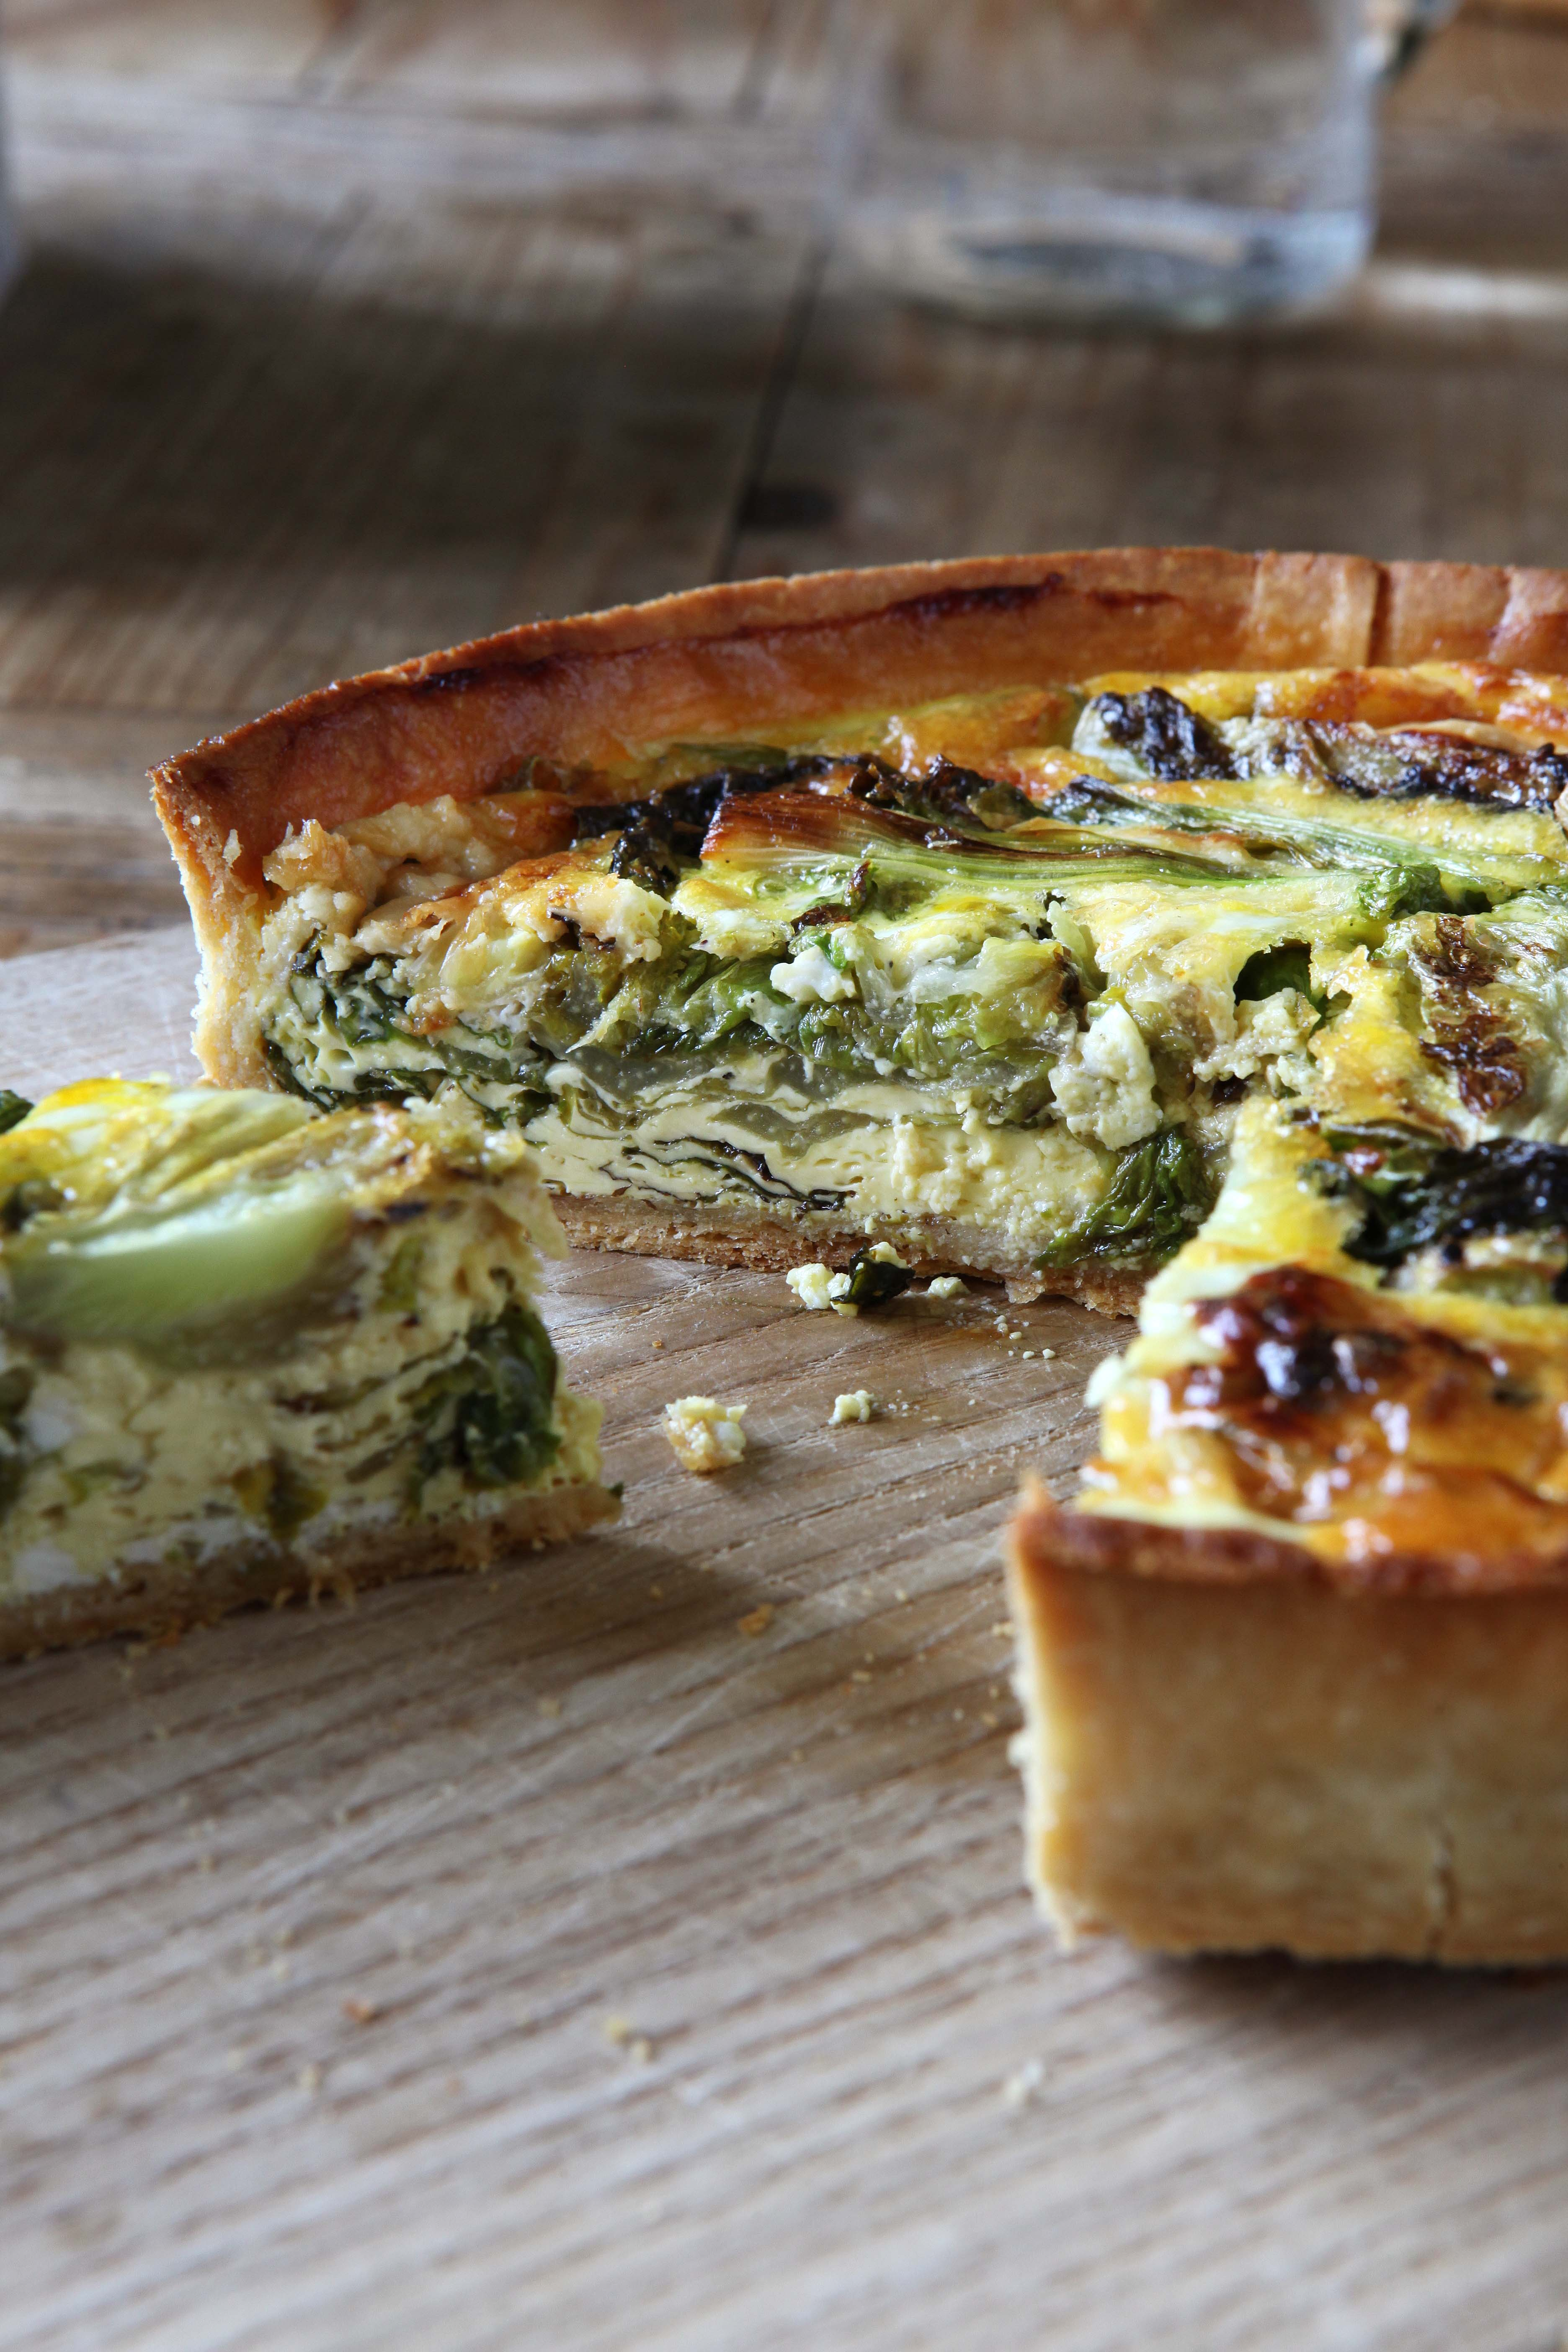 River Cottage's Lettuce, spring onion and cheese tart